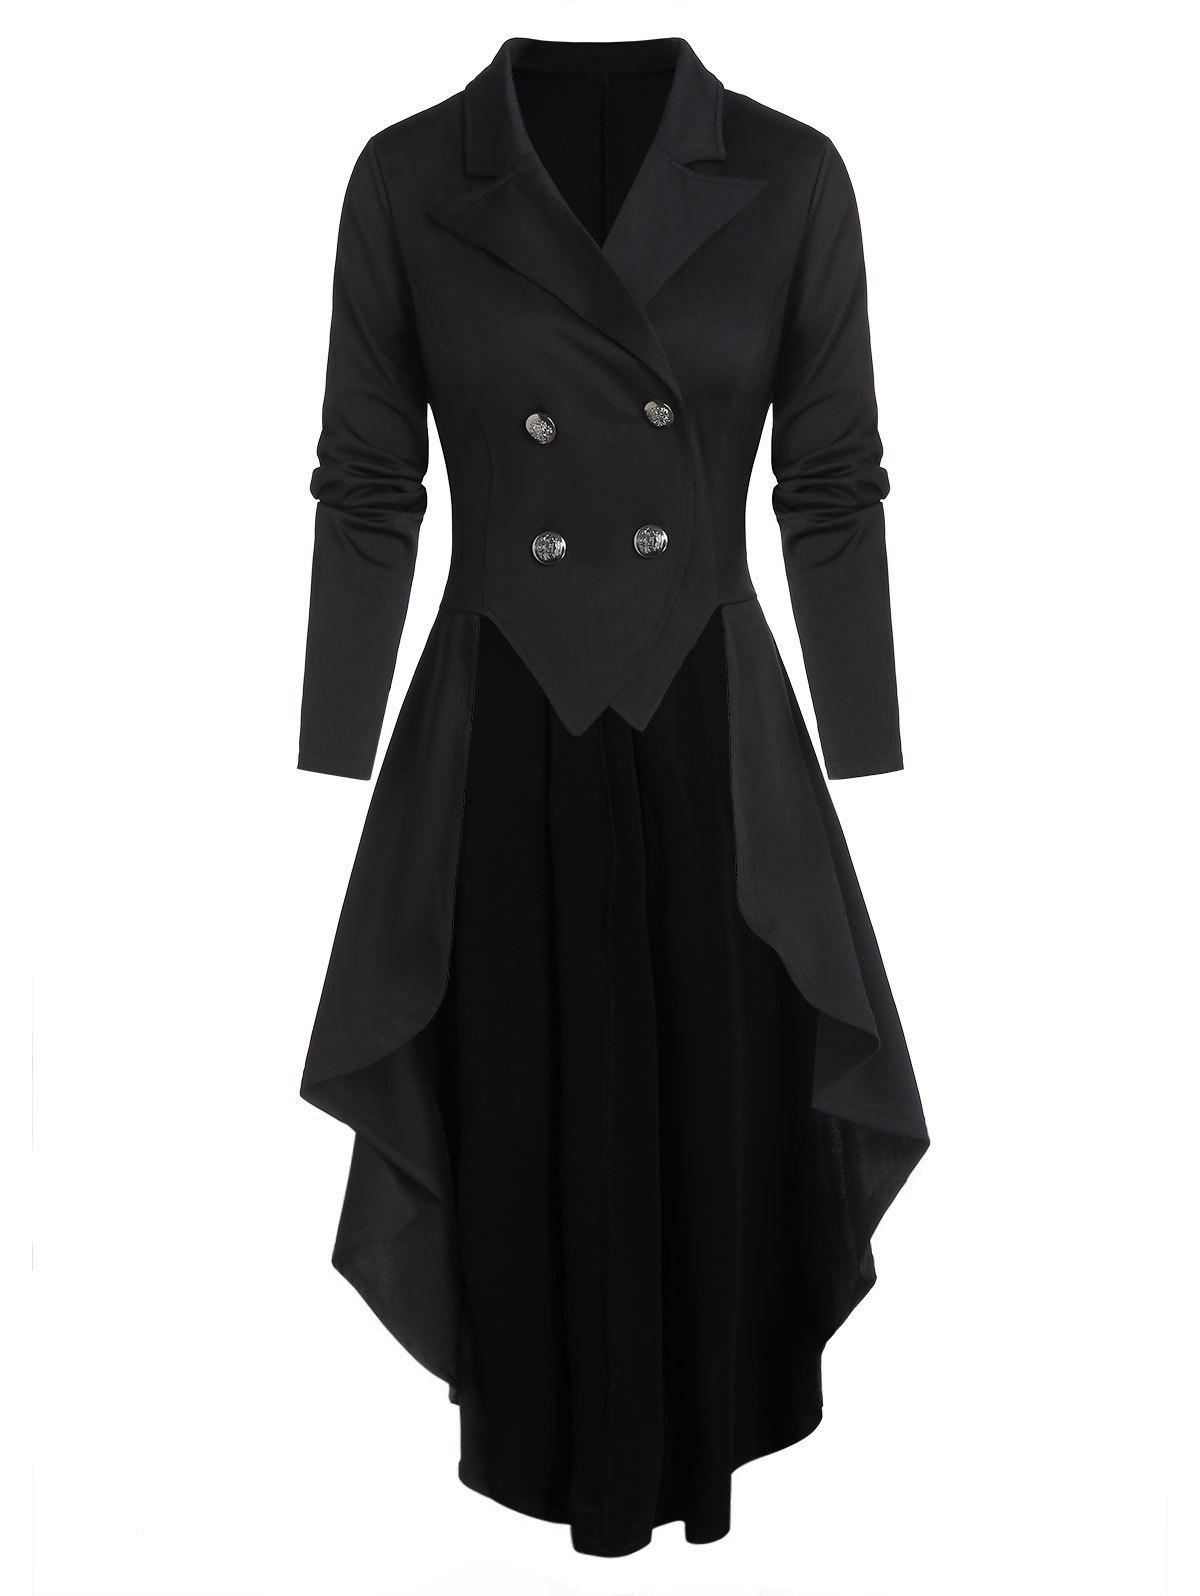 New Lace-up Back Double Breasted High Low Skirted Coat